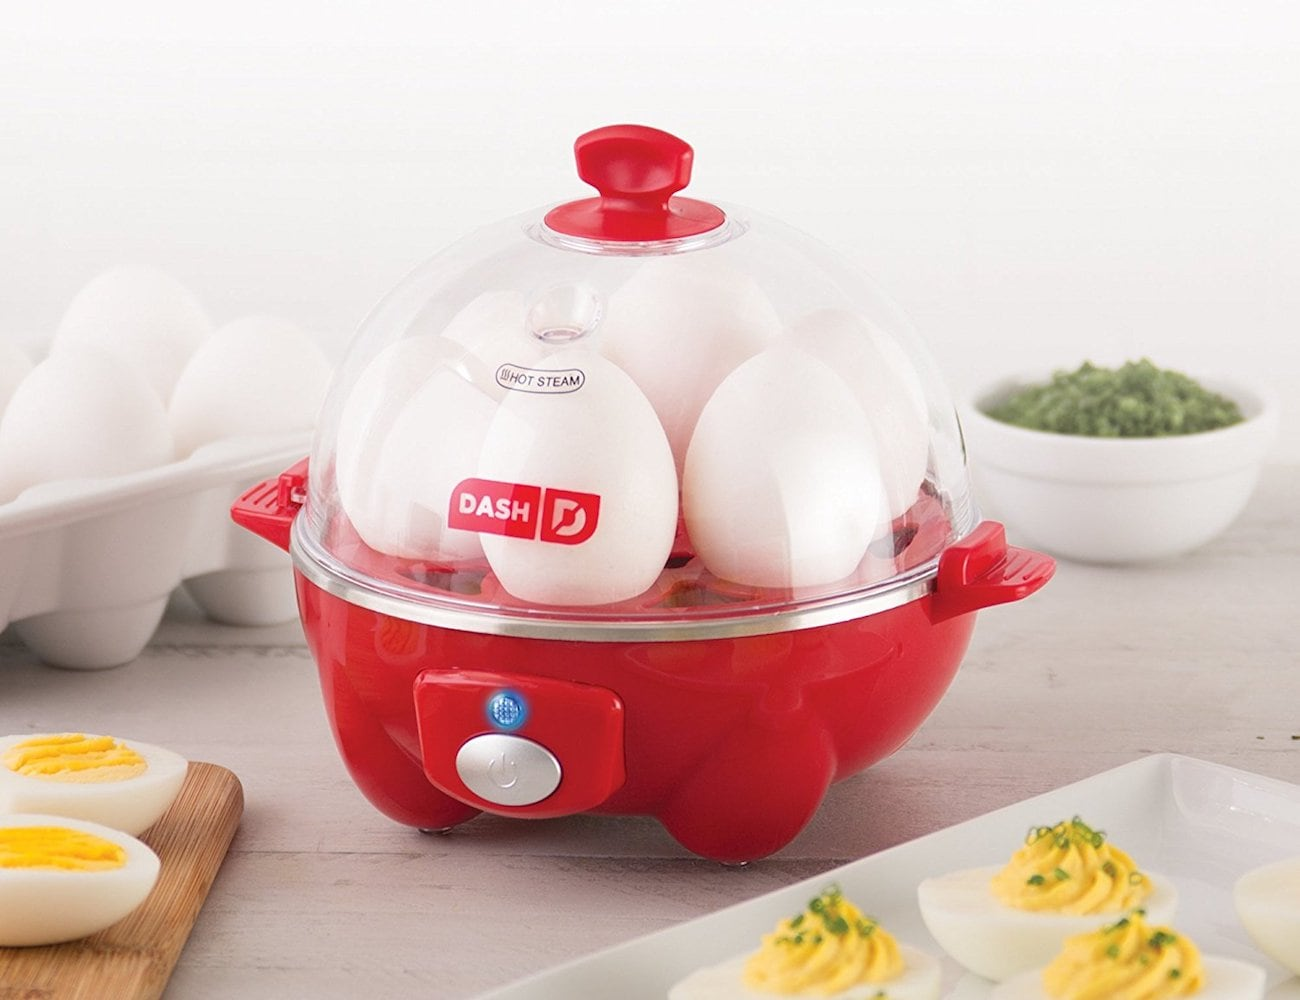 Dash Rapid Electric Egg Cooker